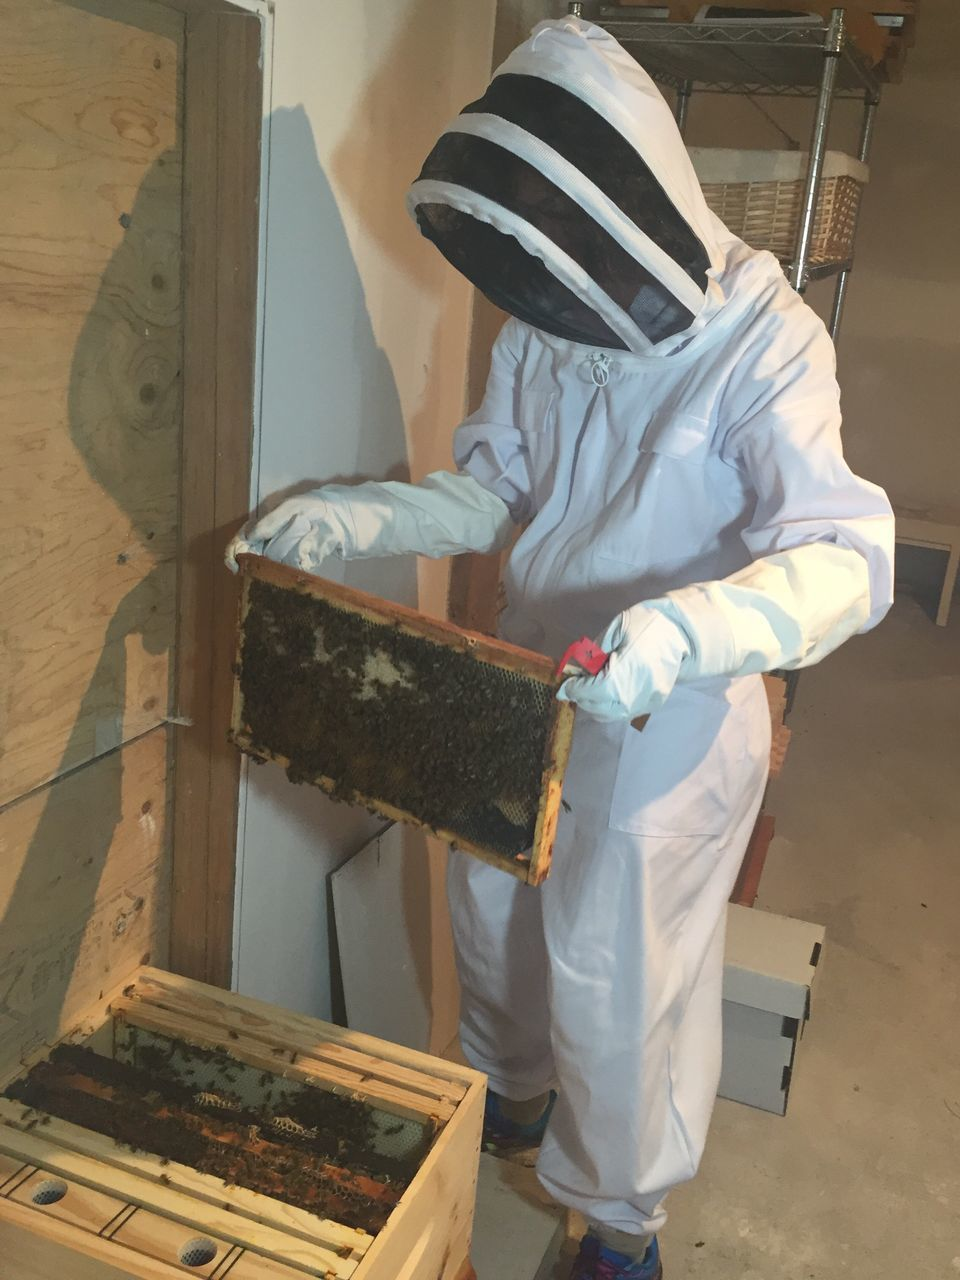 Woman In Protective Workwear Holding Honeycomb In Room